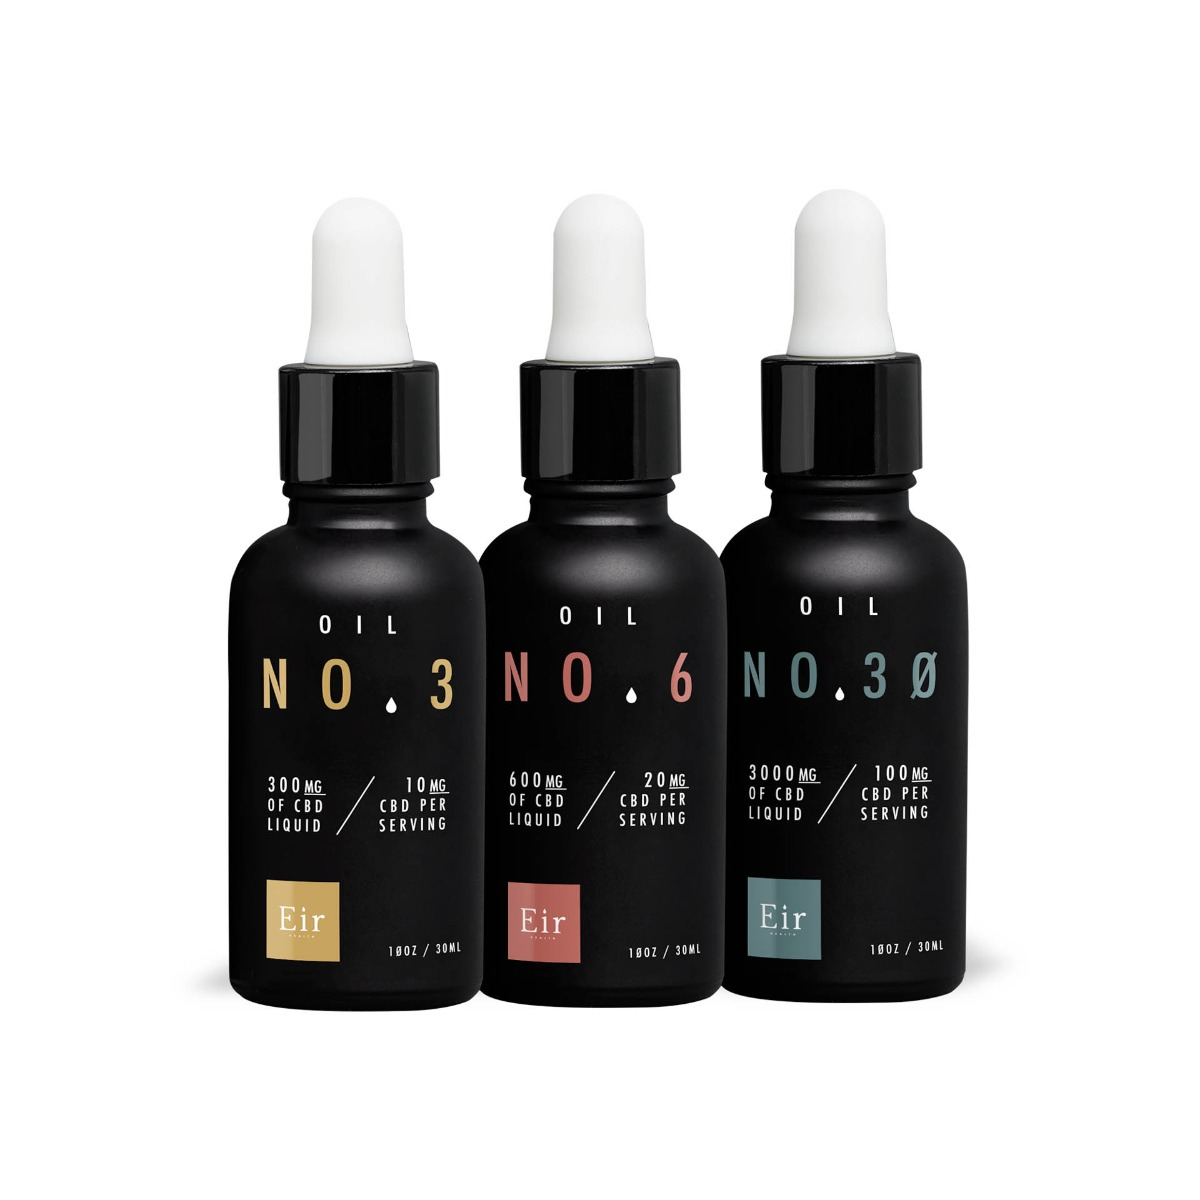 Full Spectrum CBD Oils available in Thailand